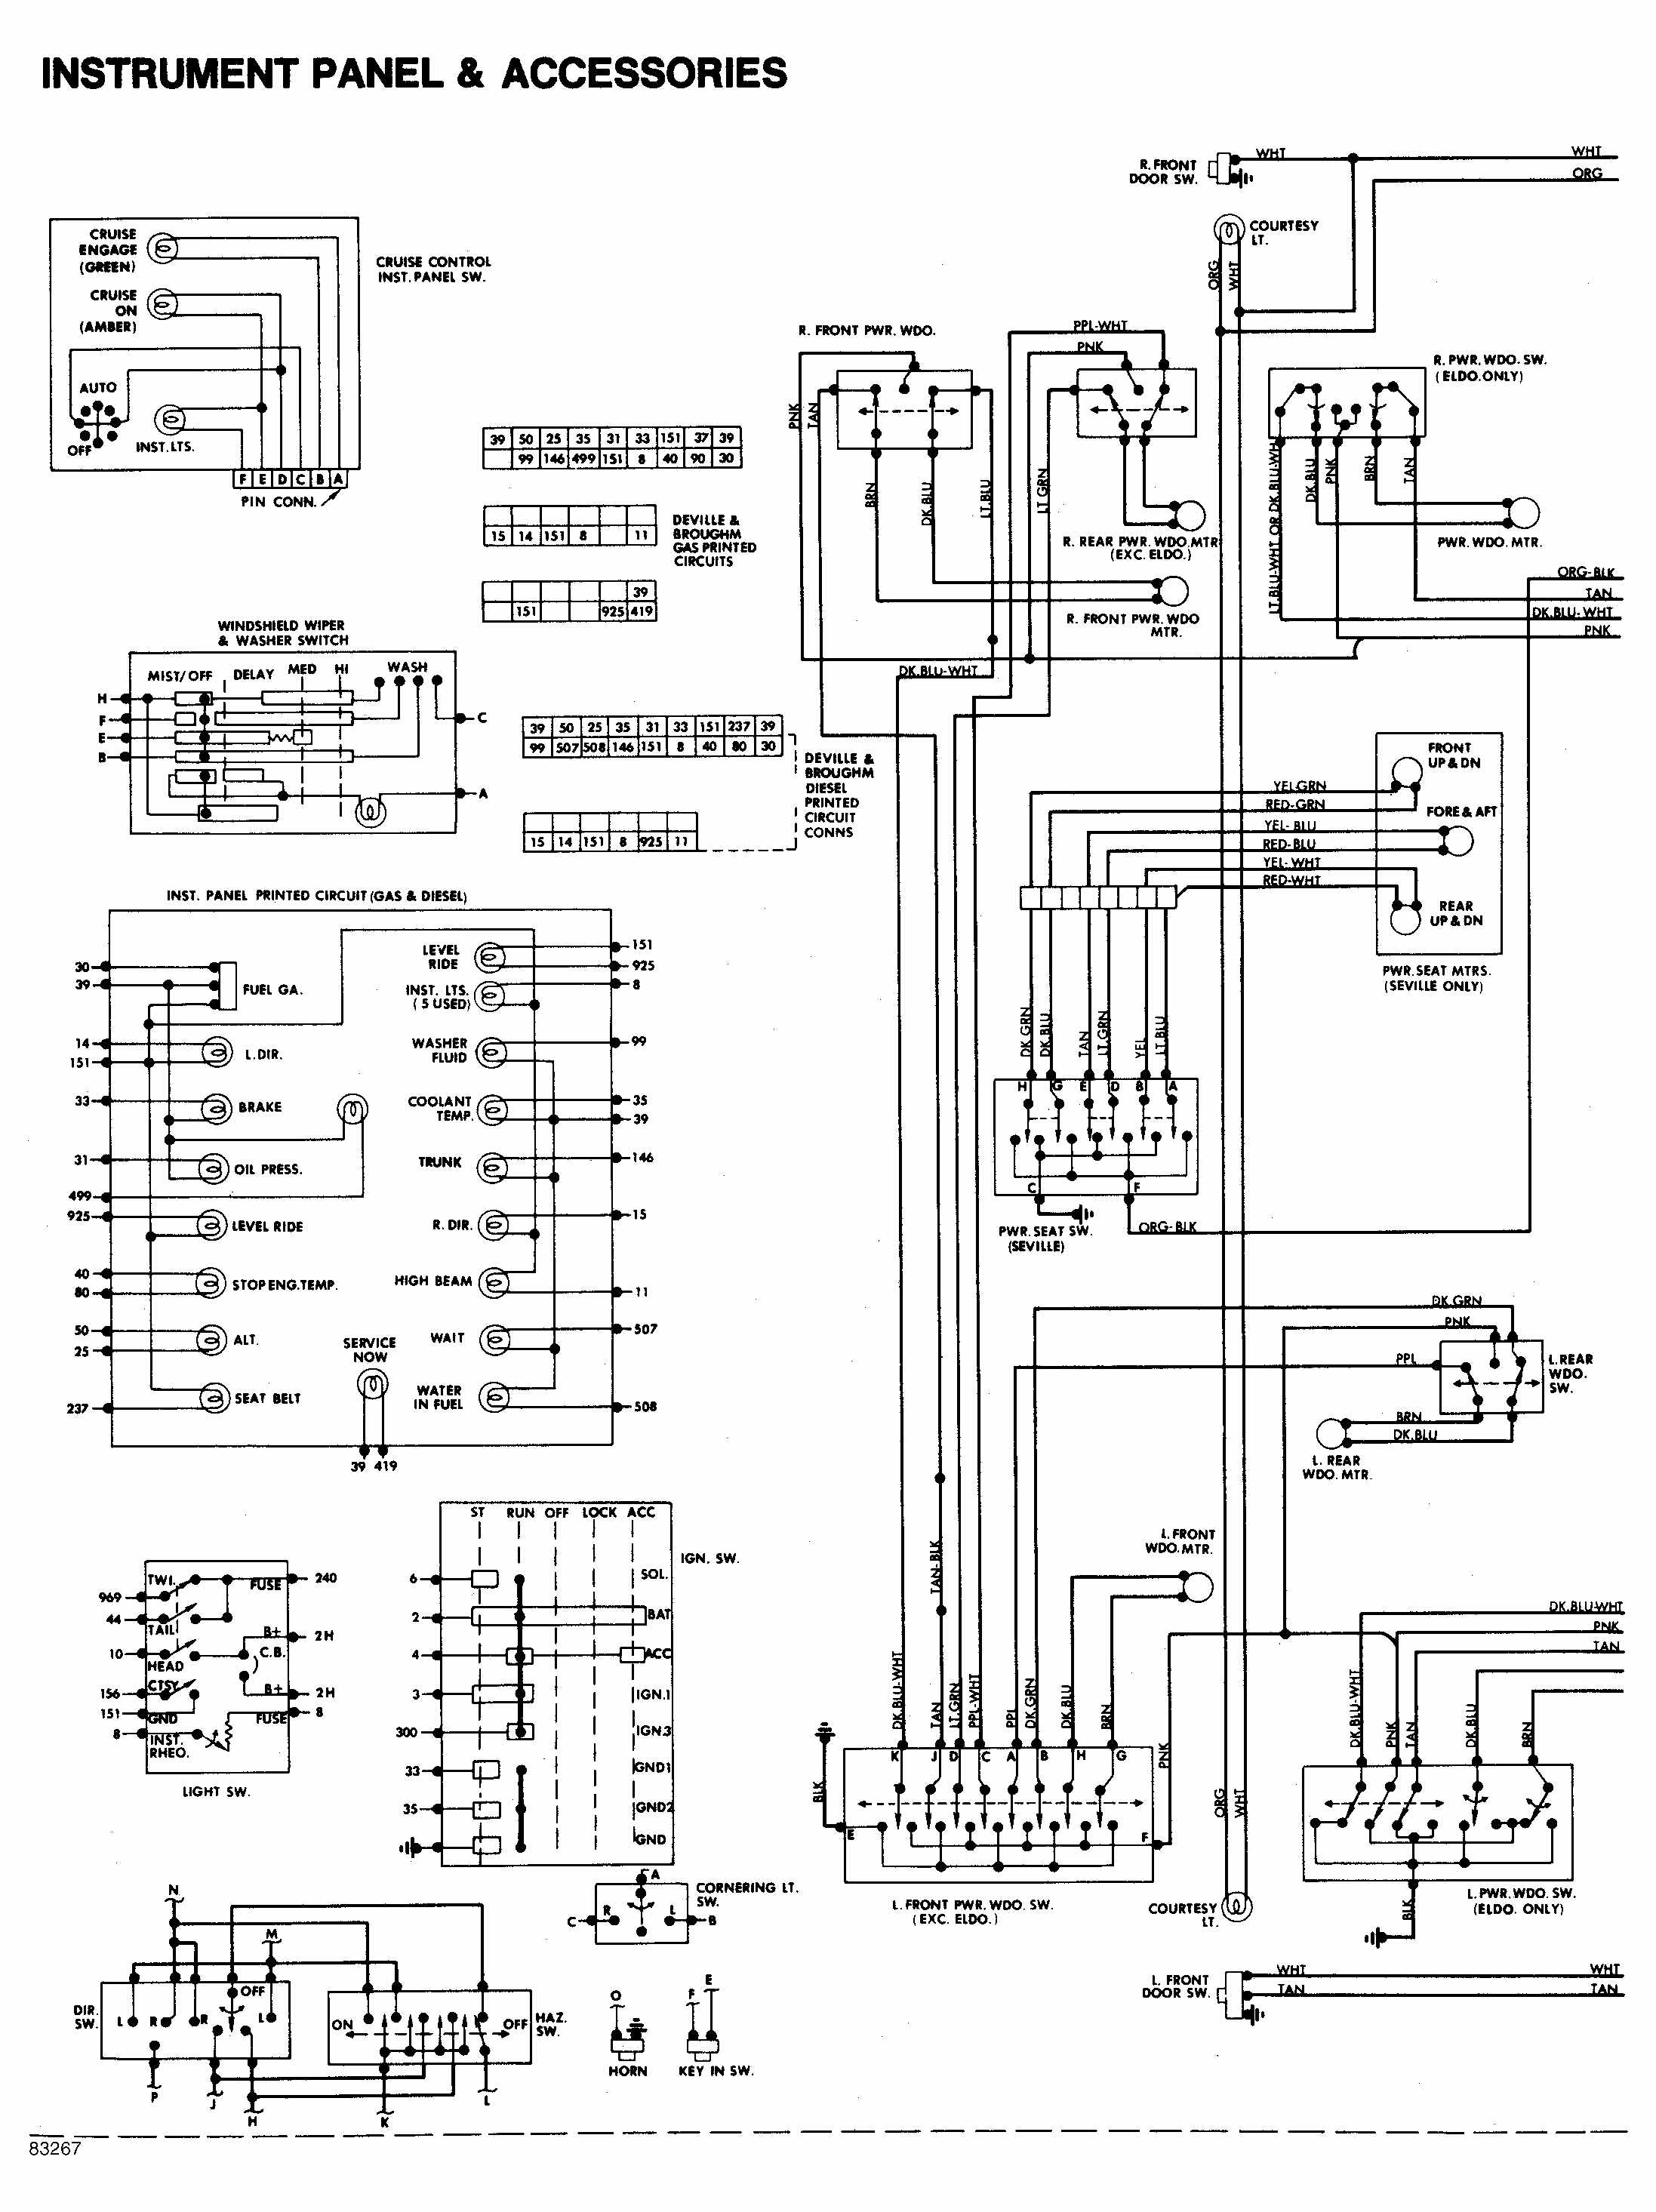 Omc Co Wiring Diagram | Wiring Diagrams Omc Wire Diagram on